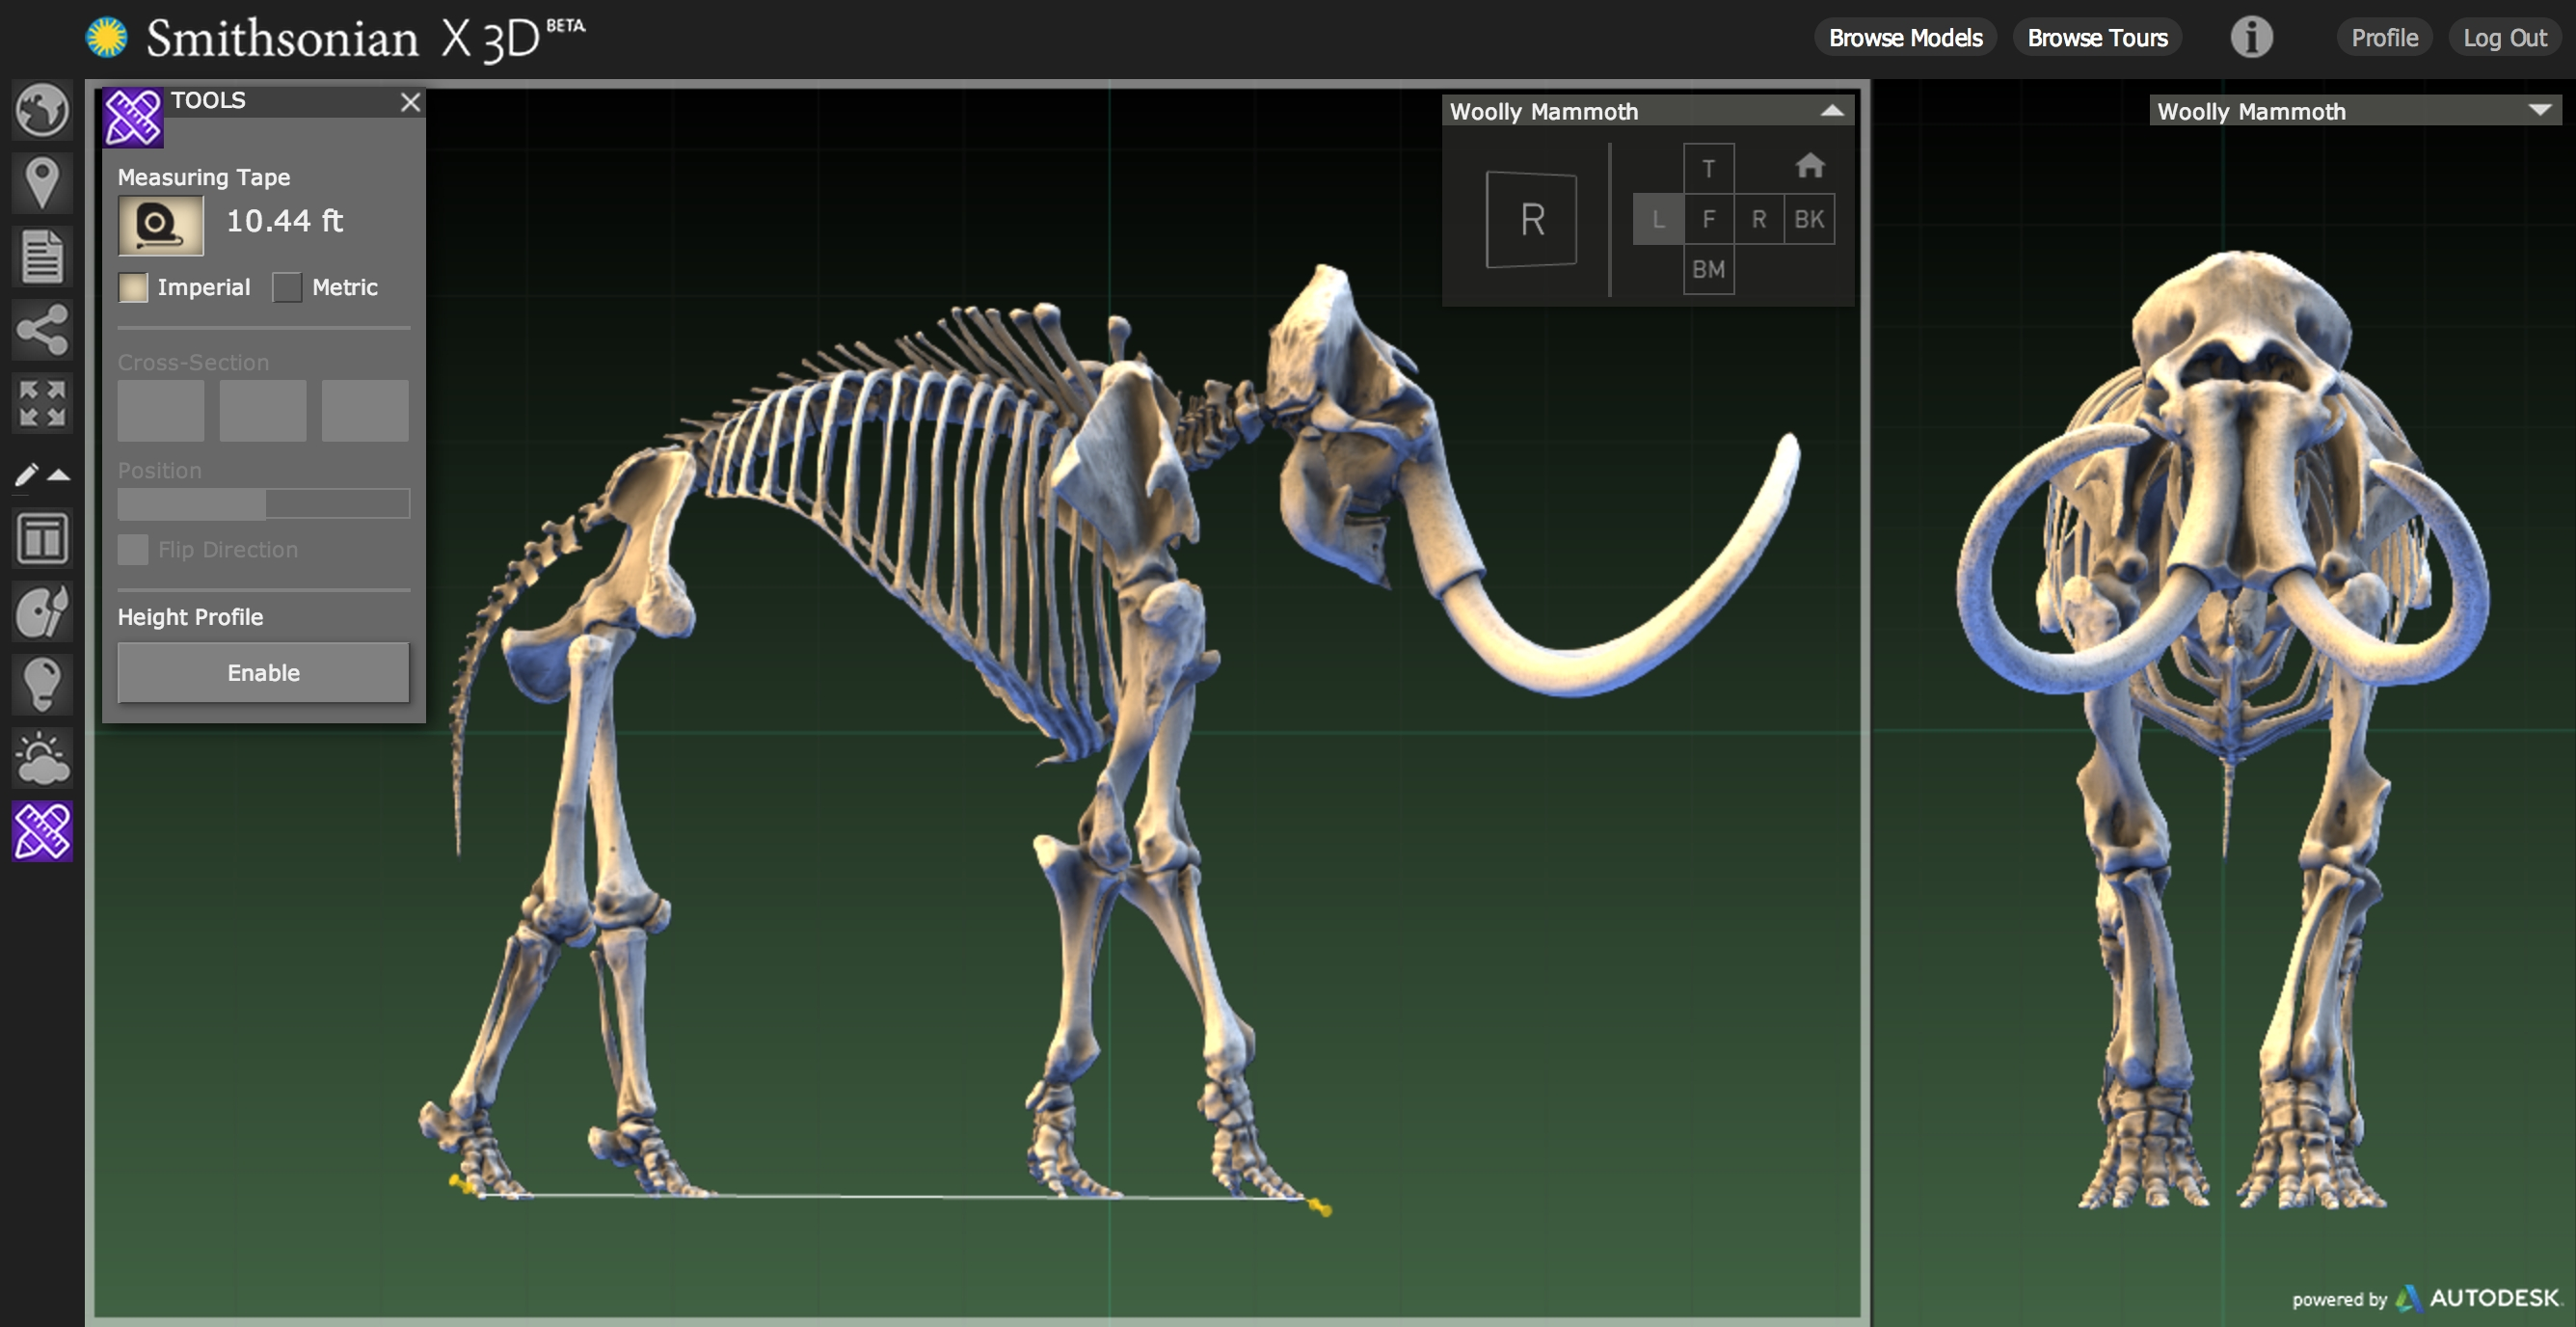 Autodesk Powers 3D Explorer for Smithsonian Institution | Business Wire